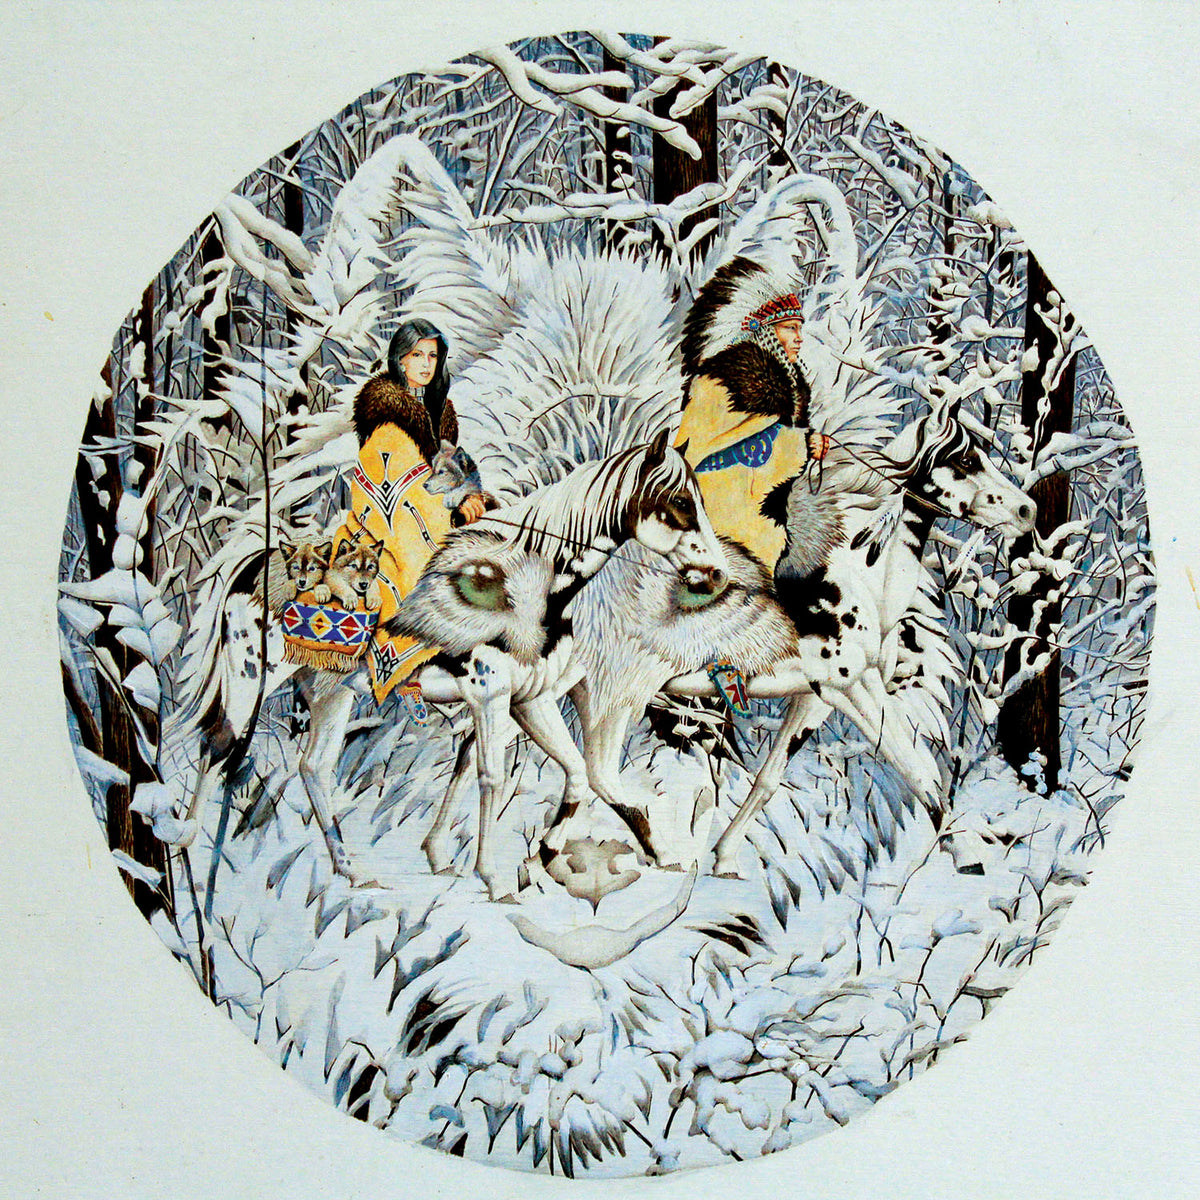 Keeper of the Wolf 1000 Piece Puzzle - Puzzlicious.com